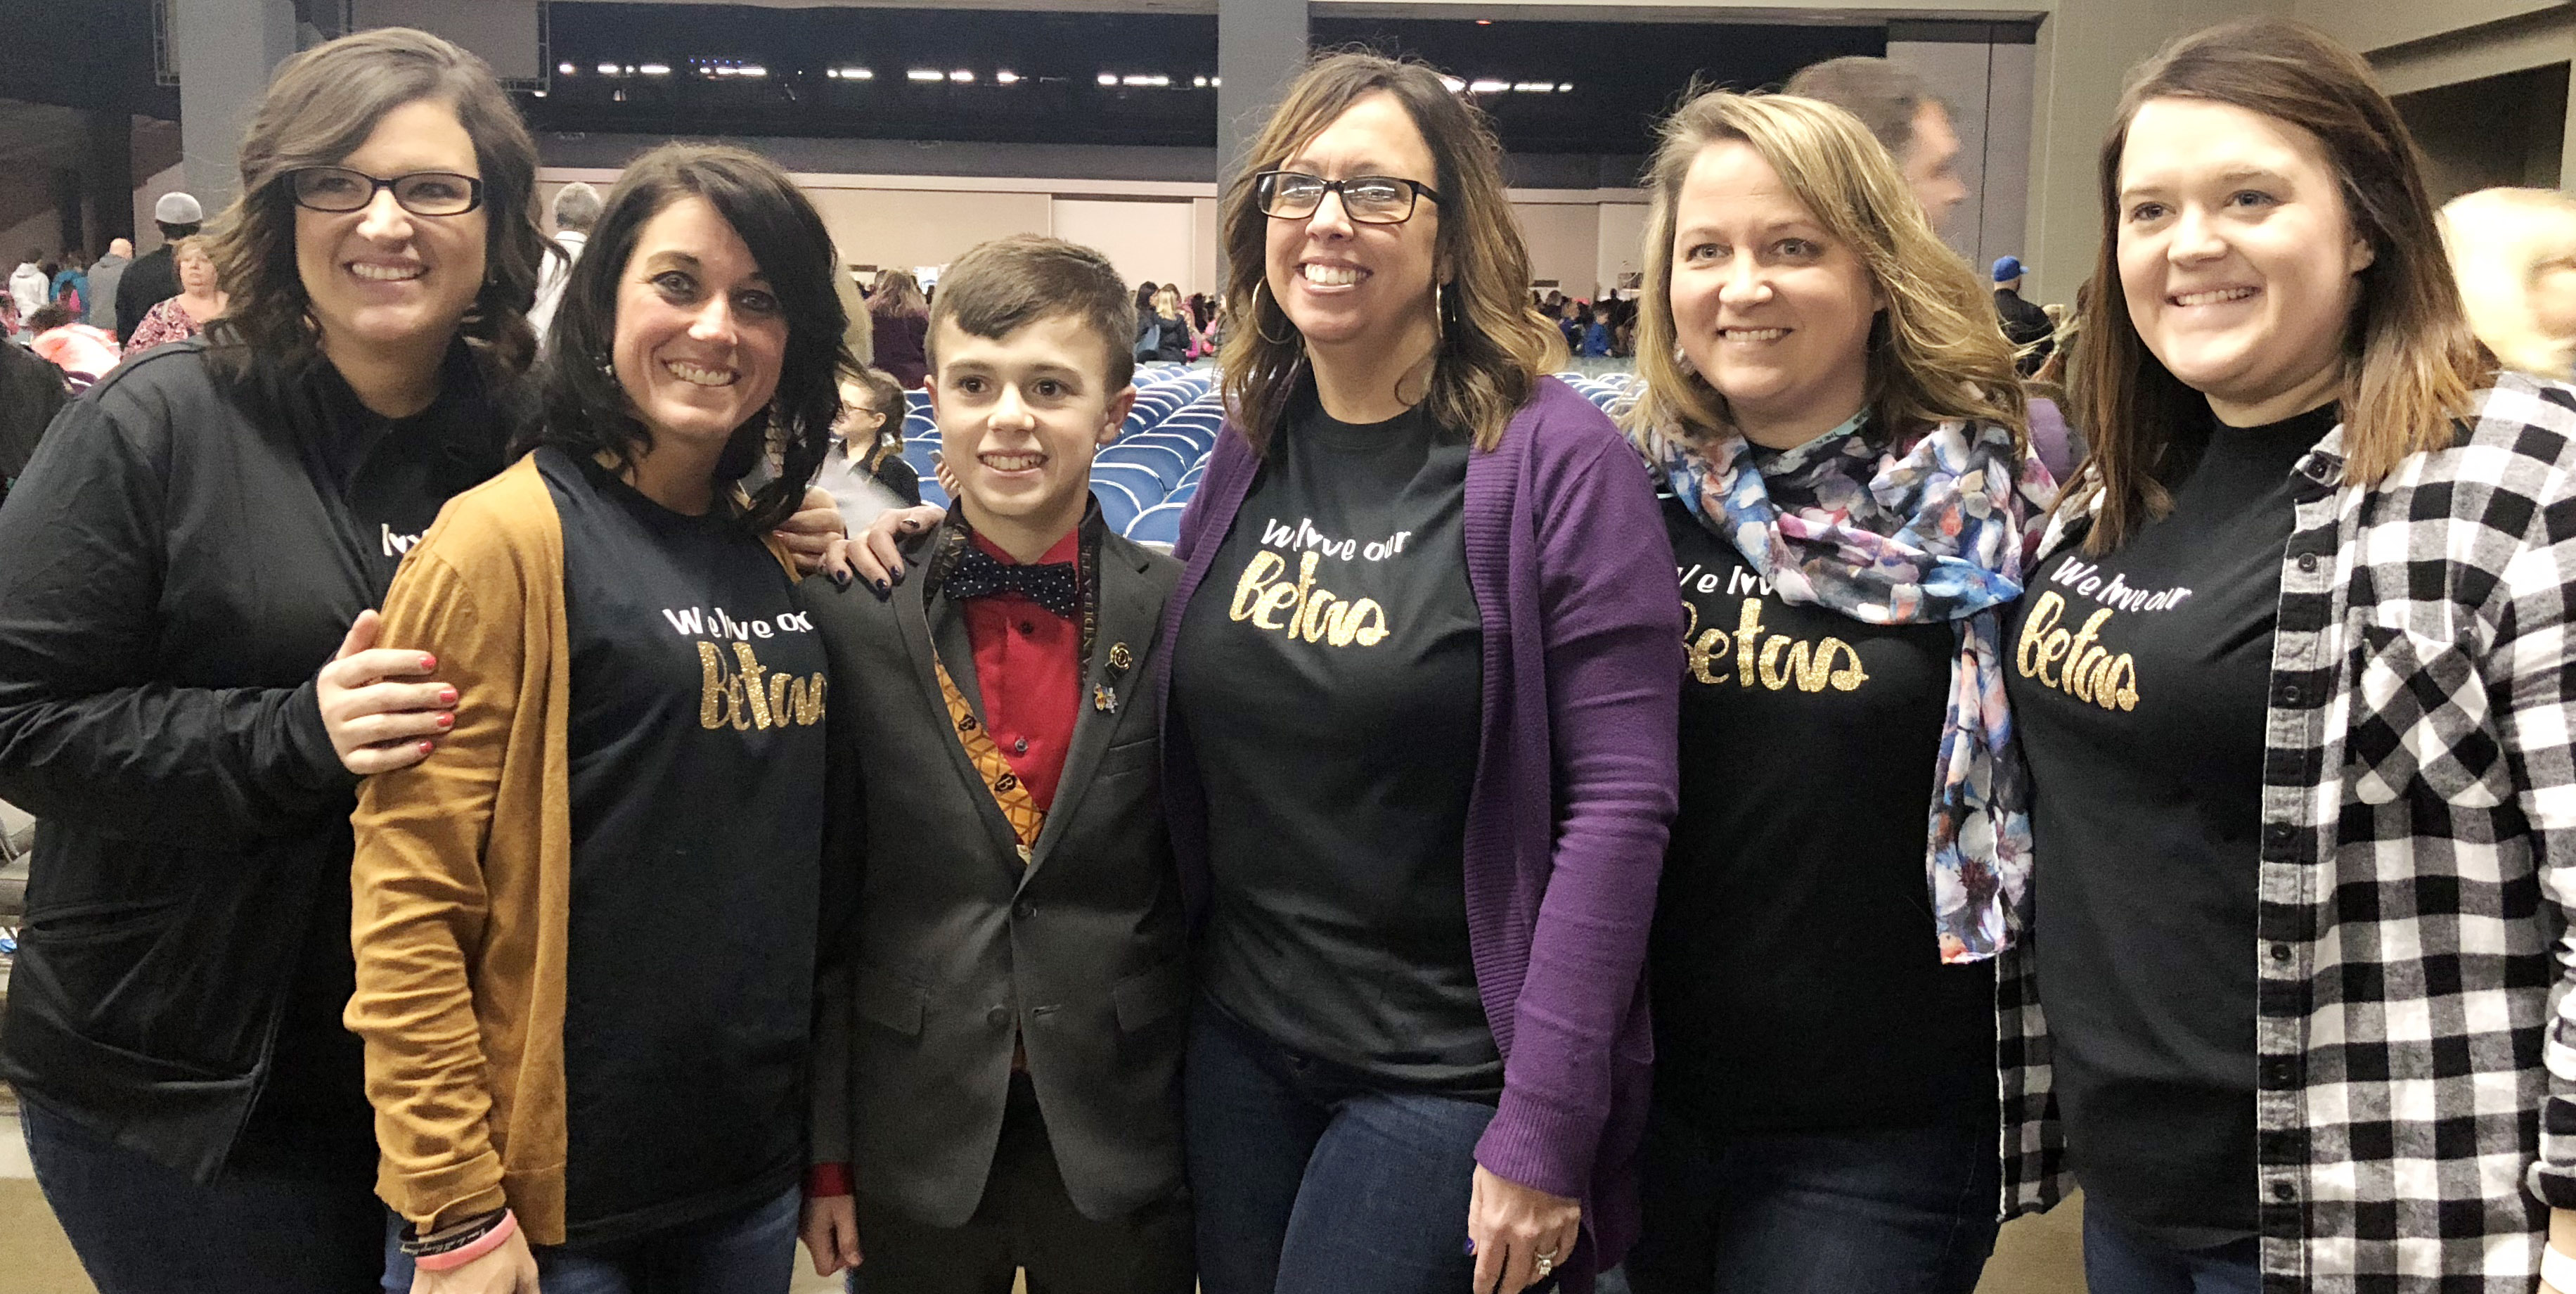 CMS Beta sponsors pose for a photo with newly elected Kentucky Junior Beta Secretary Chase Hord, a seventh-grader. He is the first CMS student to be elected to a state Beta office. From left are CMS teacher Robbilyn Speer, bookkeeper Natalia Warren, Campbellsville Elementary School teacher Farrah Hord and CMS teachers Katie Campbell and Paige Cook.